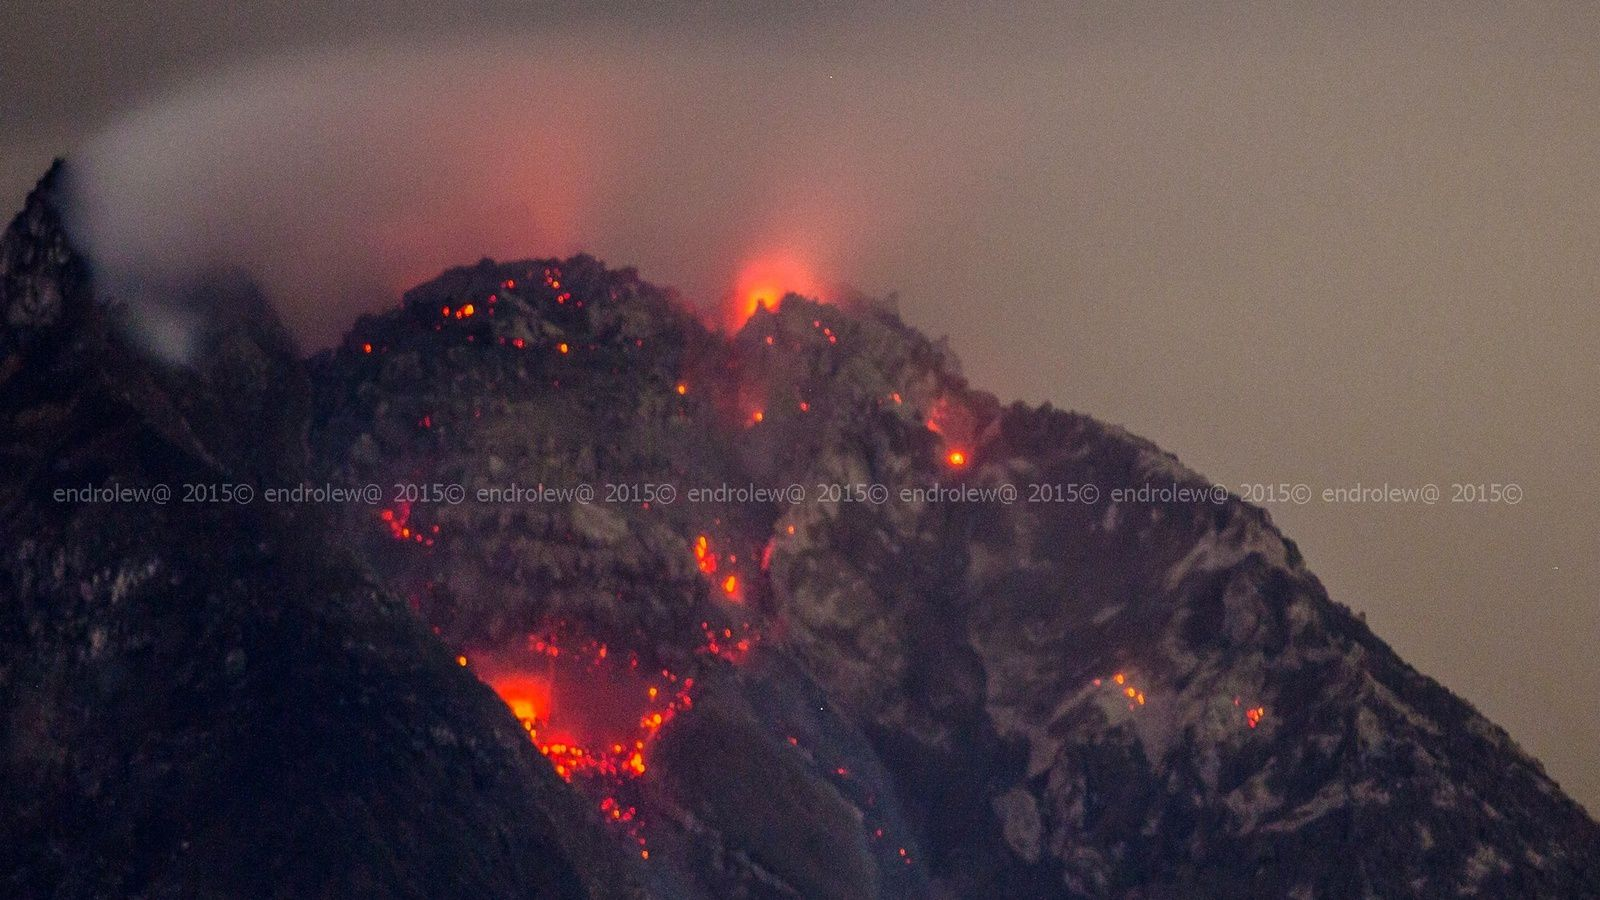 Sinabung le 27.05.2015 / 3h03 - photo endrolew@